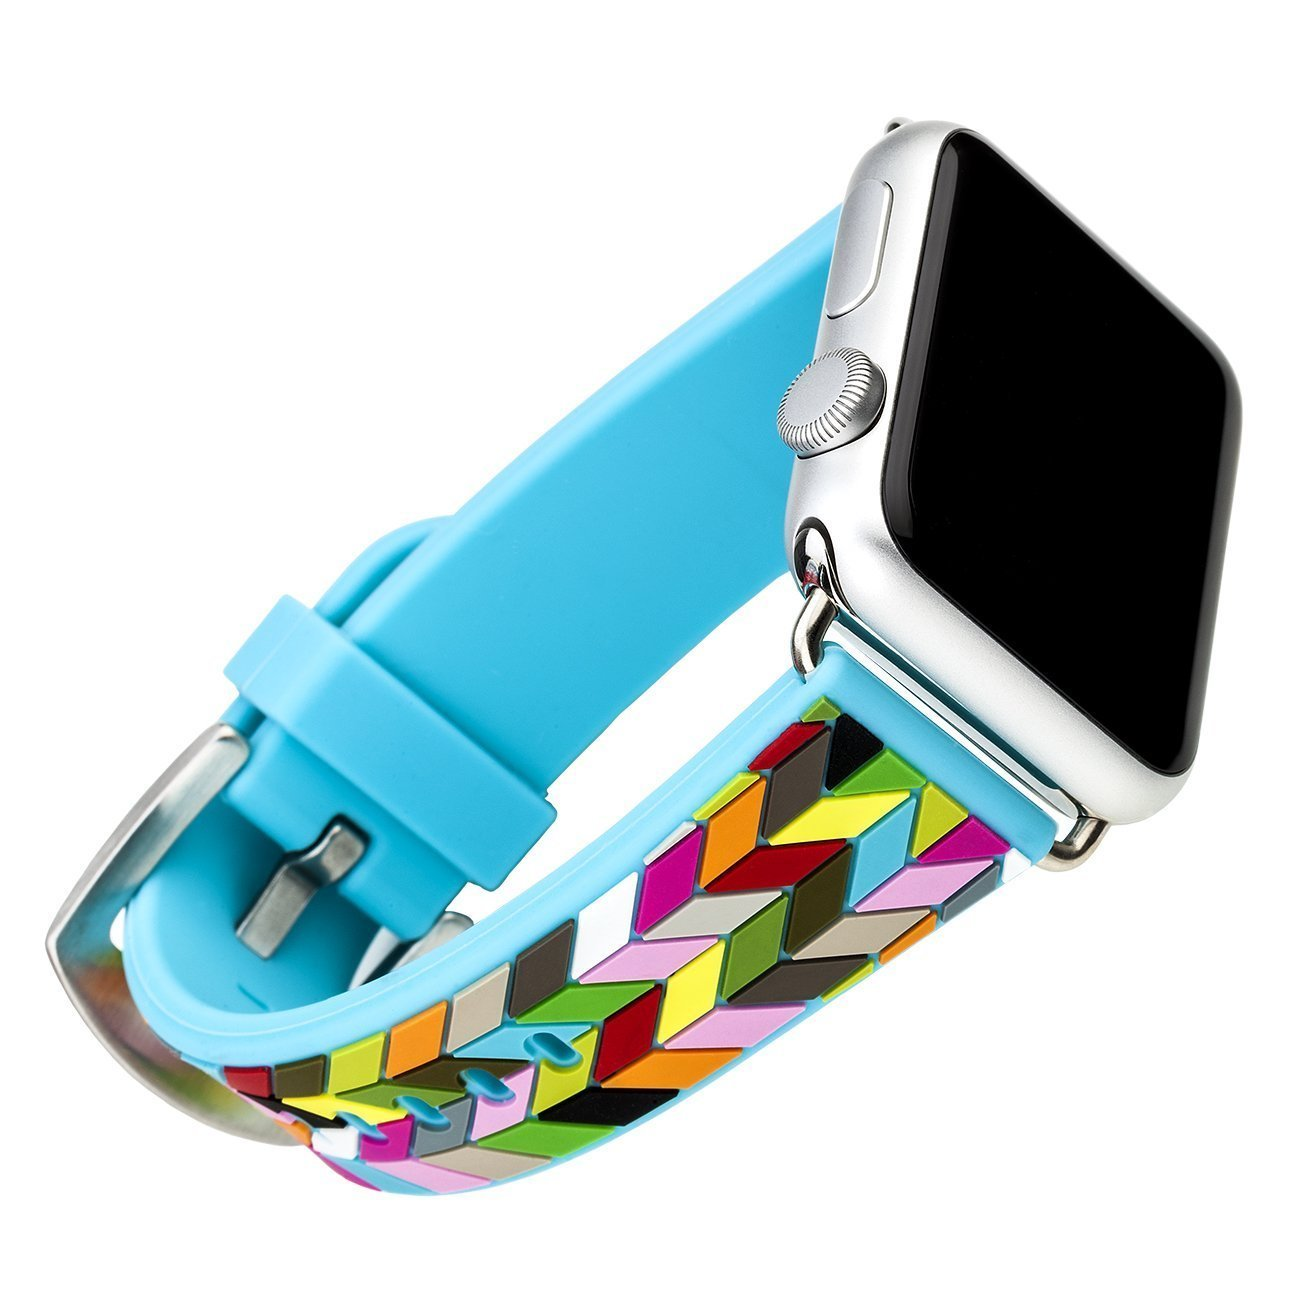 Apple Watch Band, French Bull 38mm Silicone Wrist Band Replacement w/ Metal Clasp for Apple Watch All Models 38mm (Condensed Ziggy)